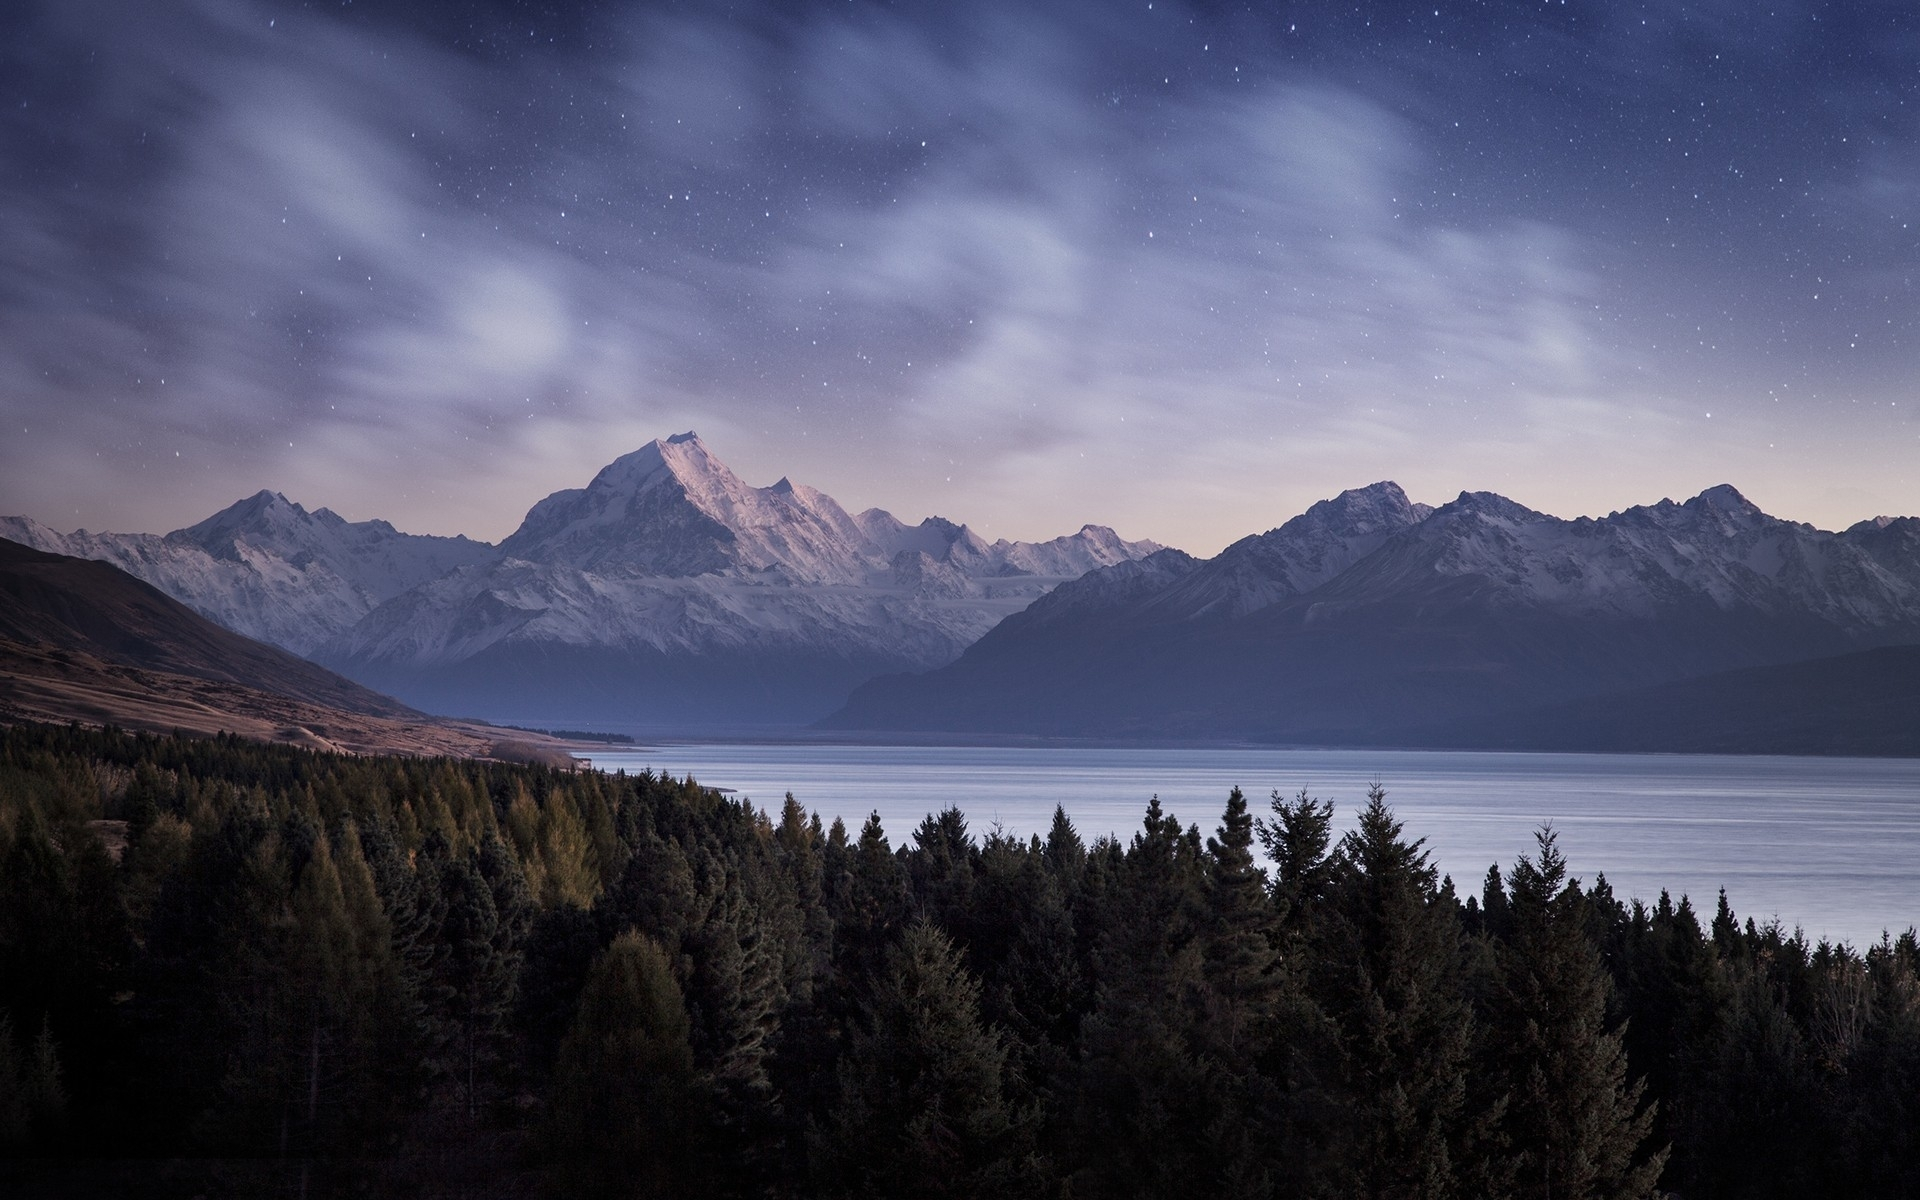 Good Wallpaper Mountain Sky - dark-forest-mountains-sky-lake_wallpapers_39735_1920x1200  Snapshot_782170.jpg